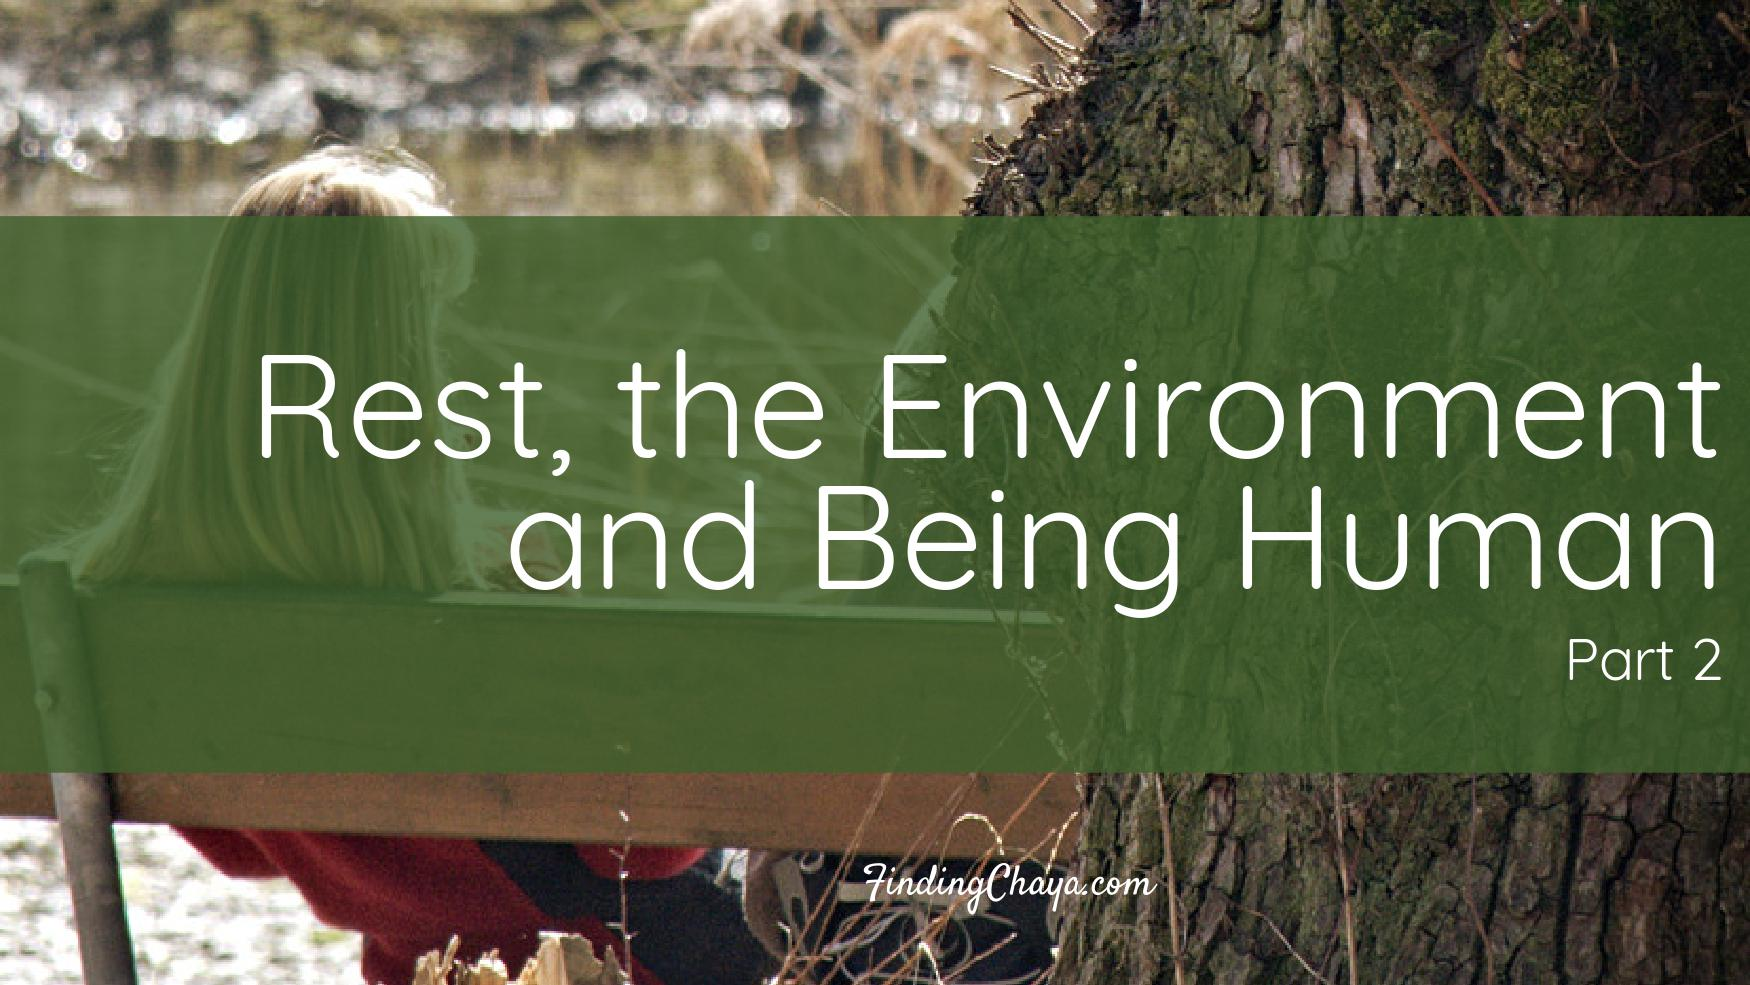 Rest, the Environment and Being Human (Part 2)